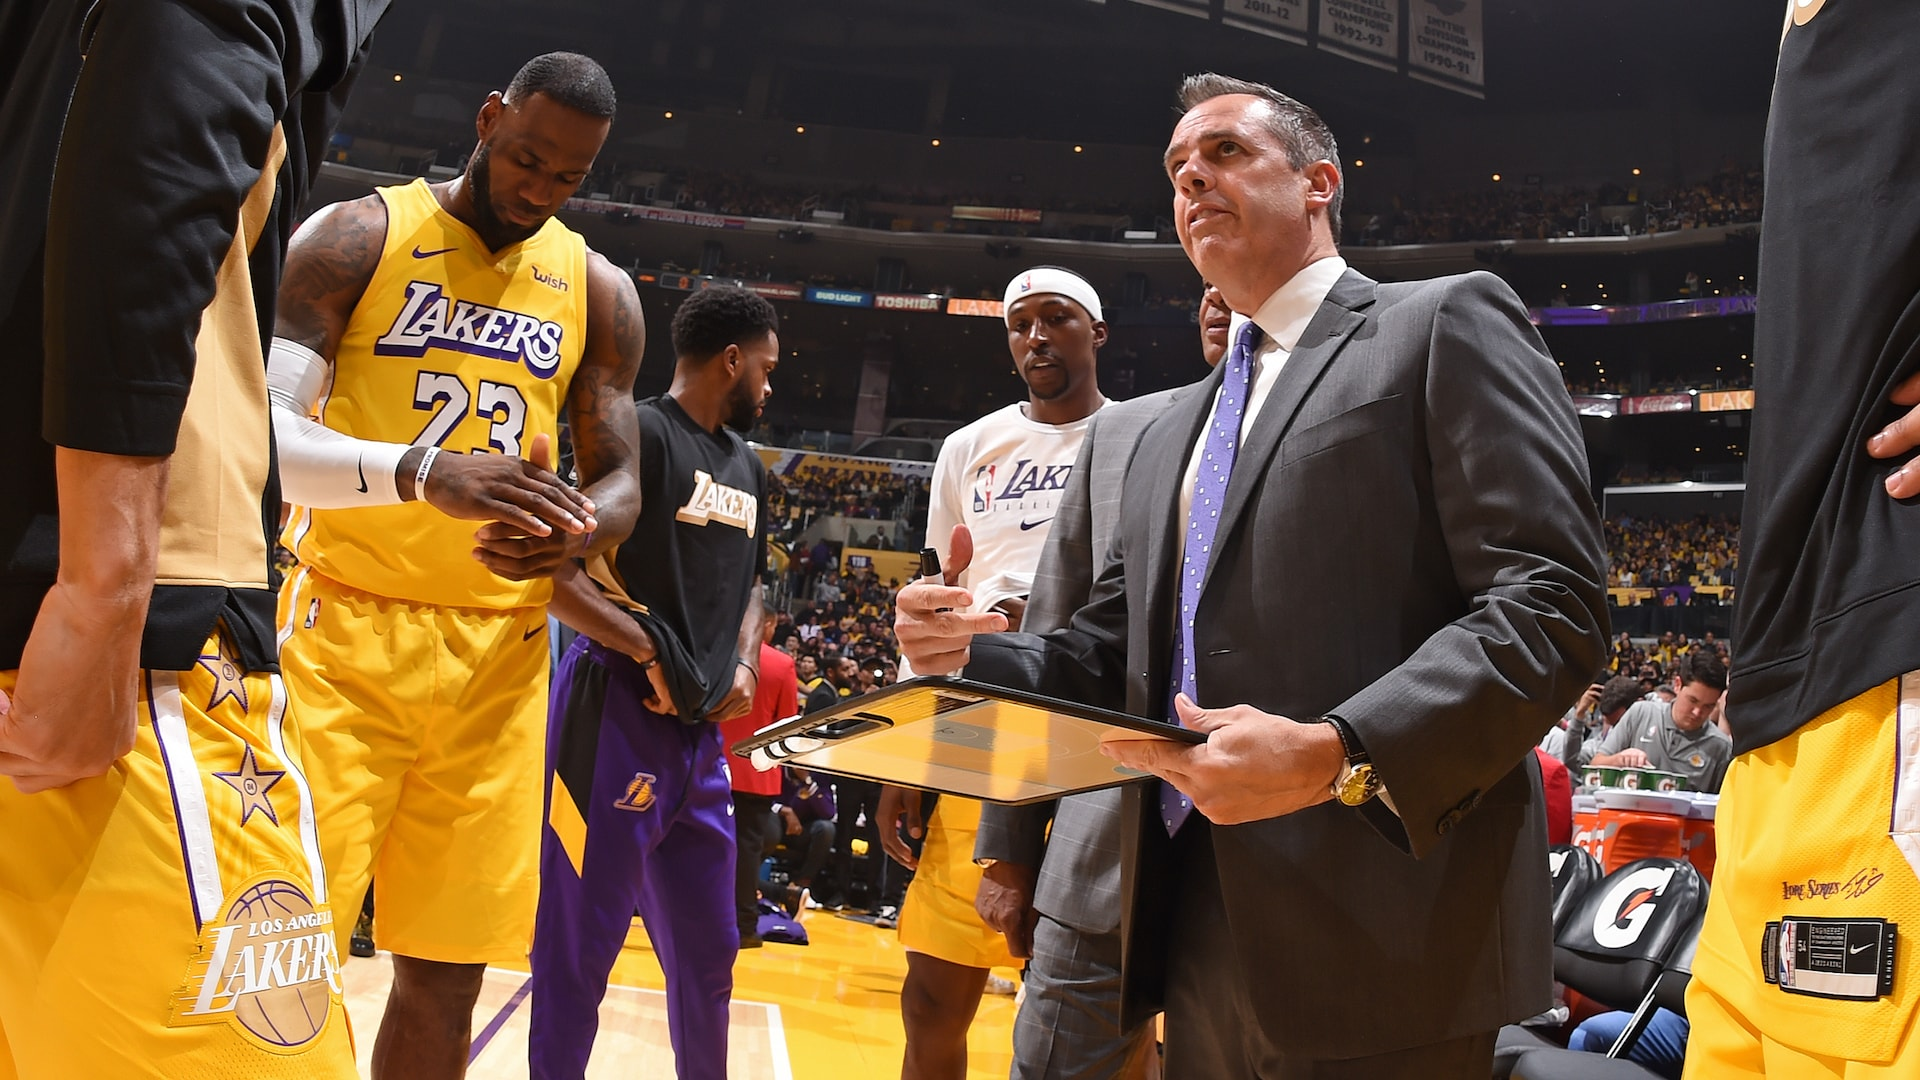 Lakers' Vogel to coach Team LeBron in 2020 All-Star Game